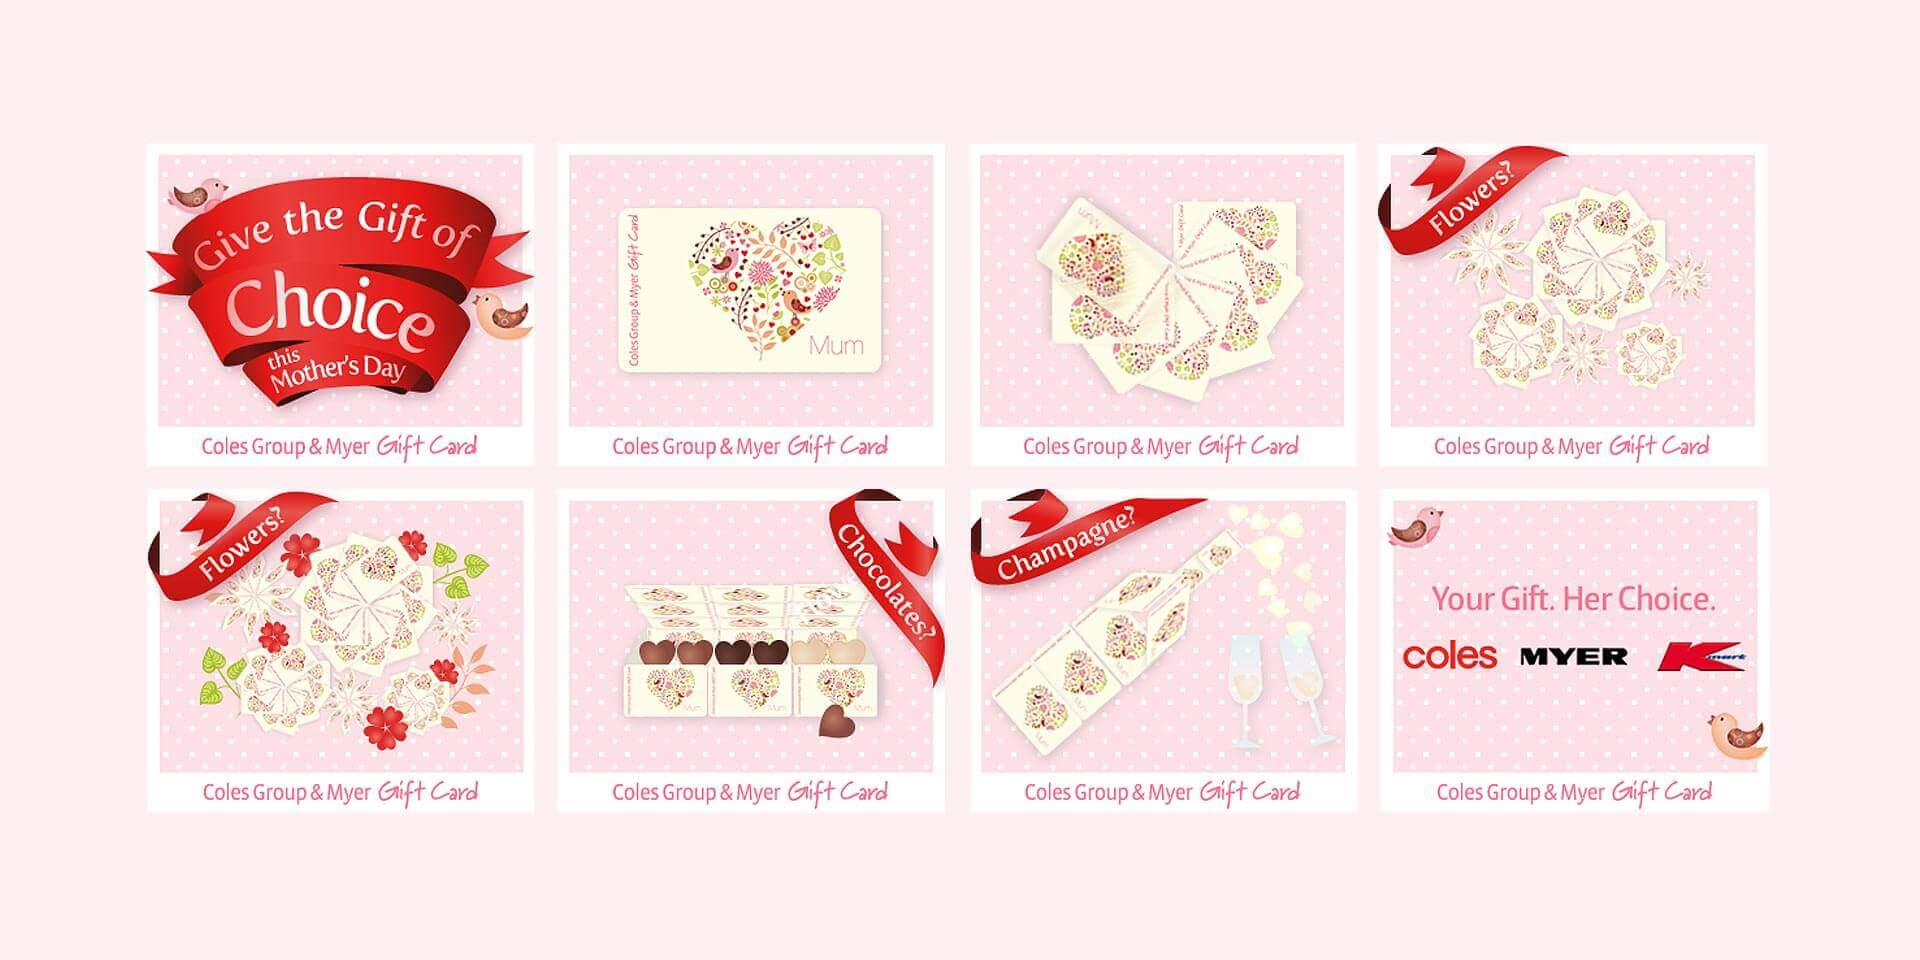 'Give the Gift of Choice' Coles Mothers Day Gift Card Mrec digital ad storyboard.